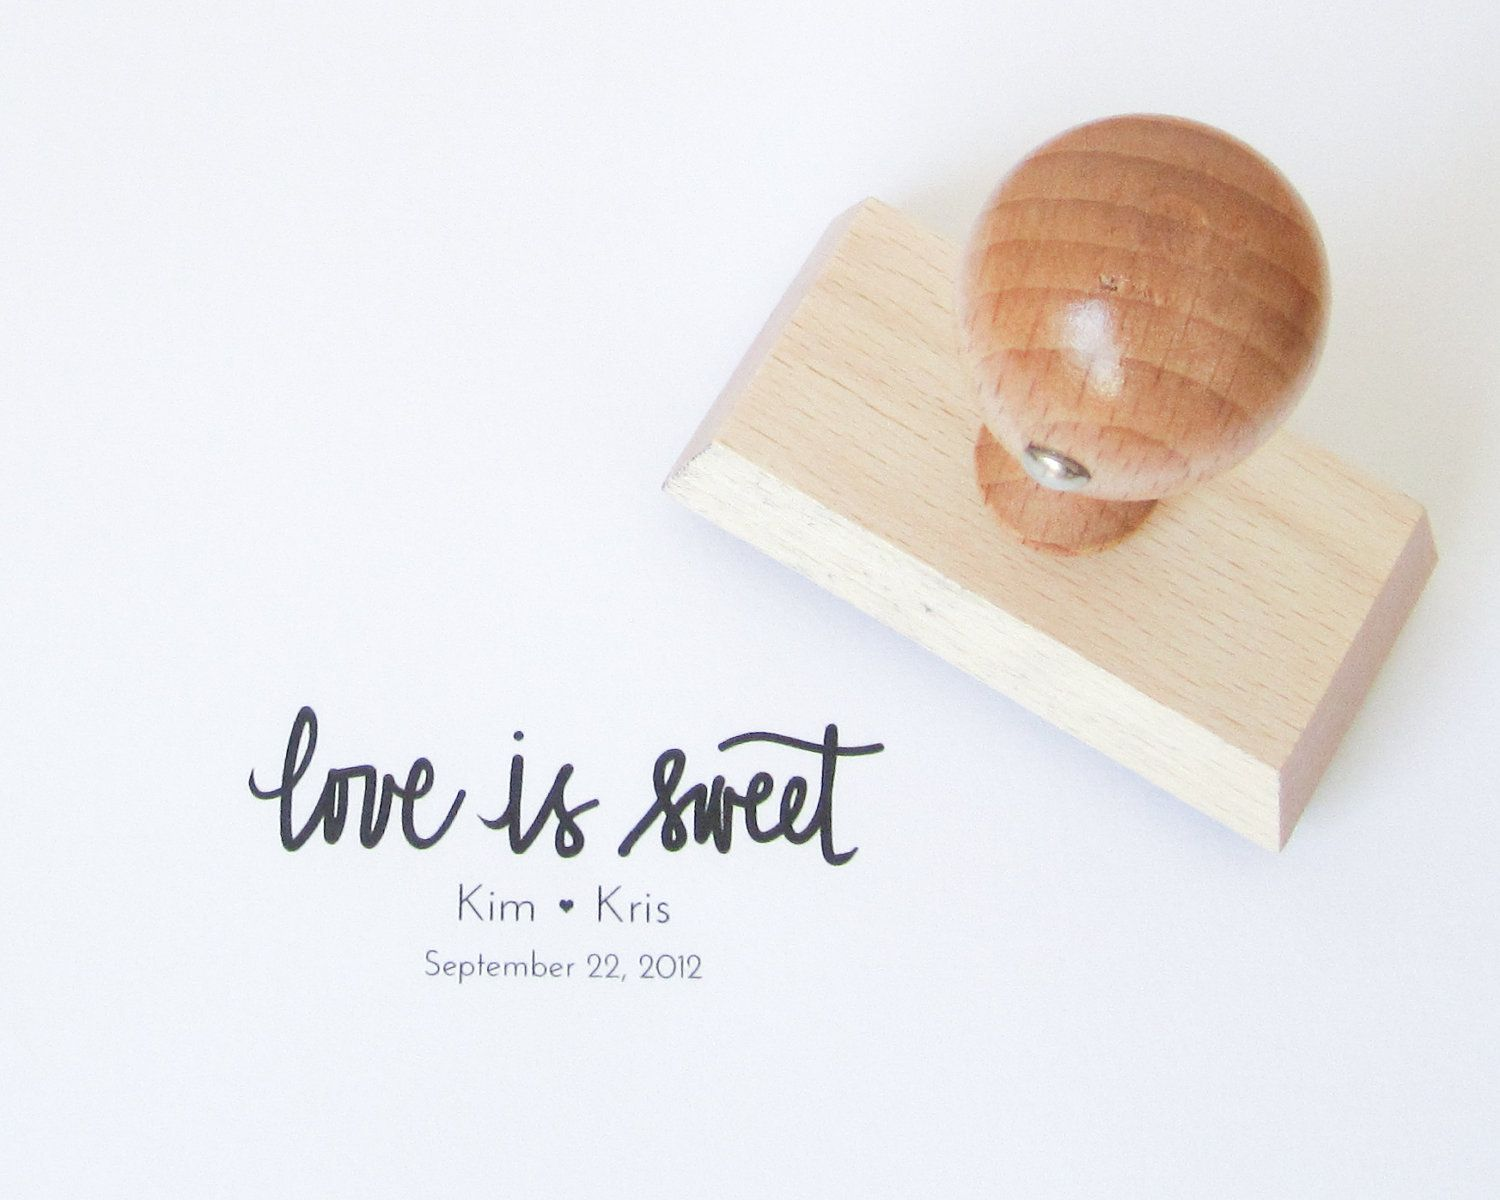 Personalized Wedding Calligraphy Stamp    #calligraphy